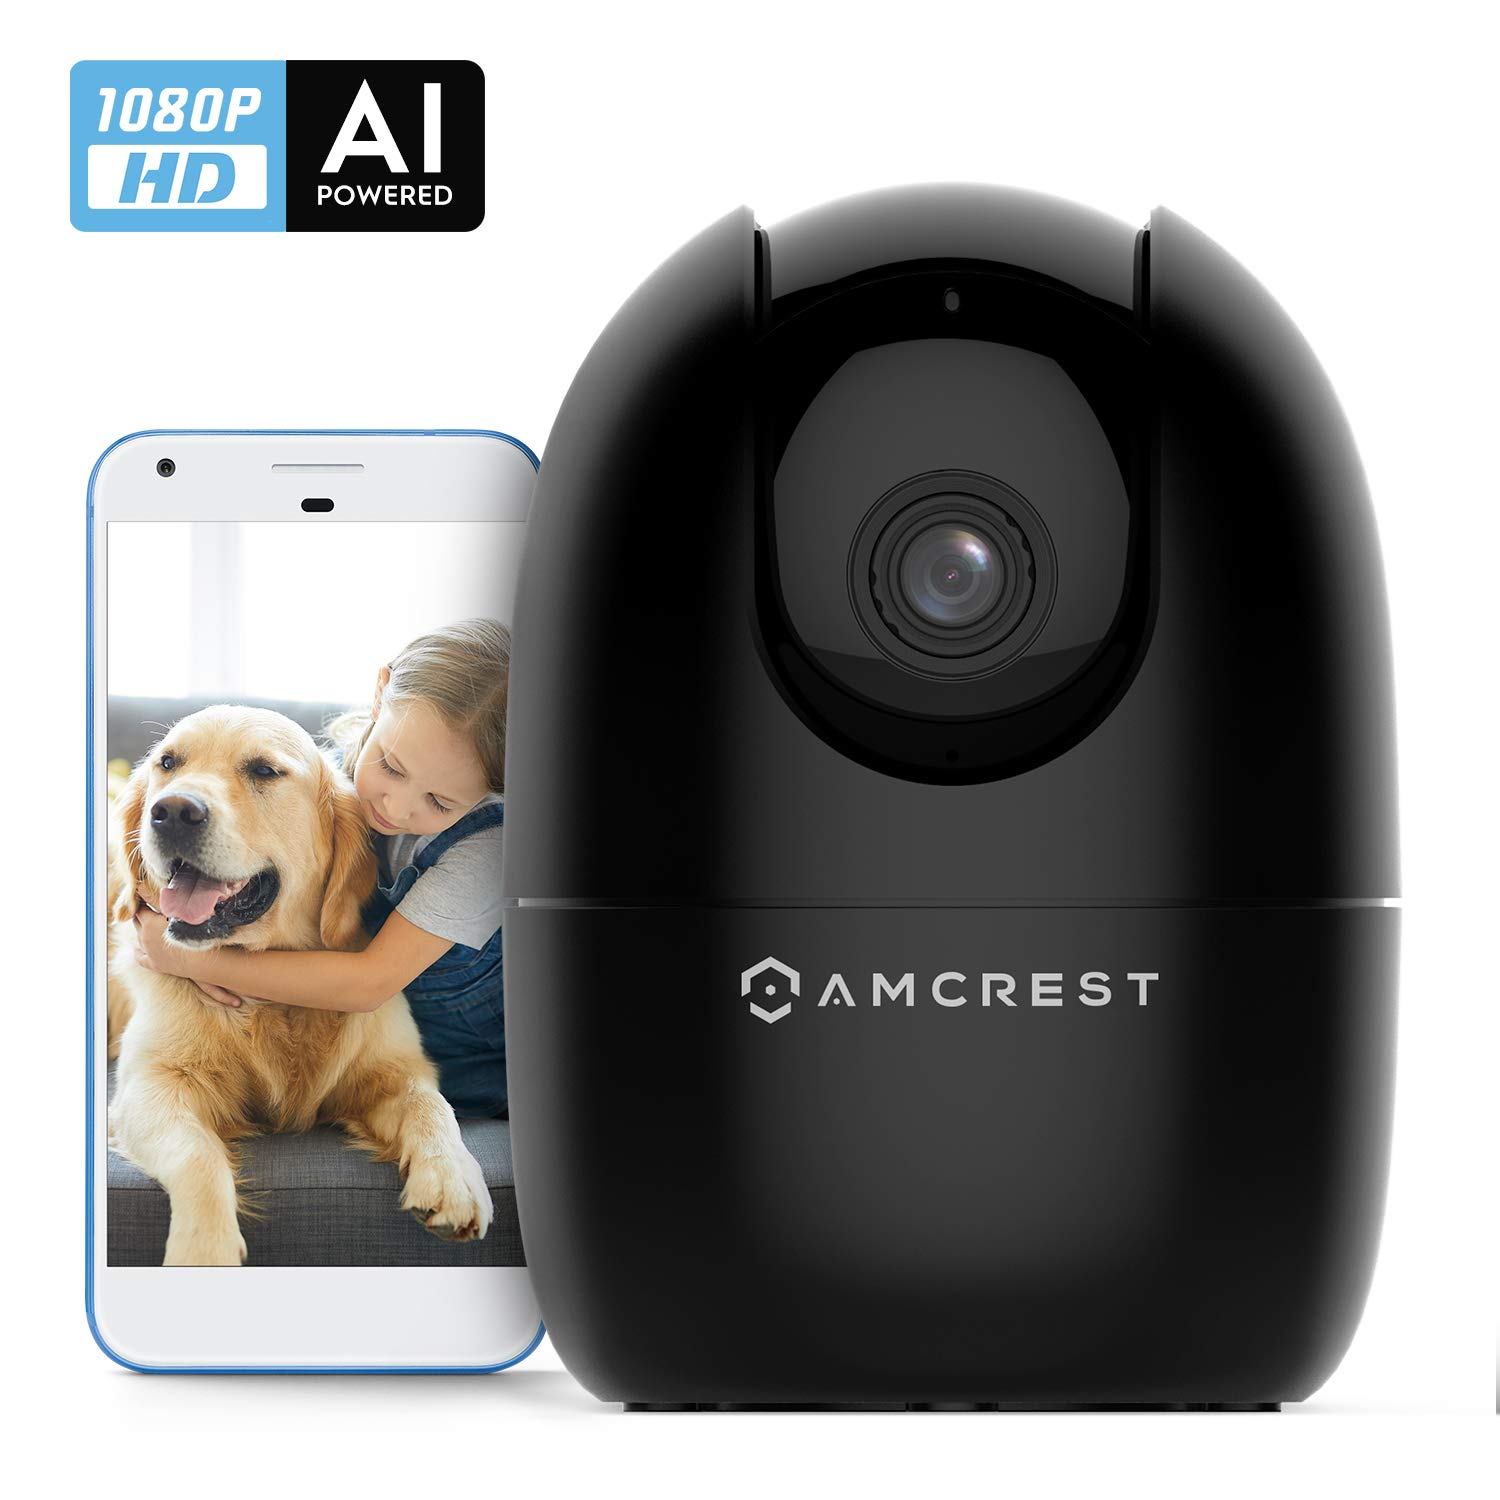 Amcrest Smart Home WiFi Camera, Baby Monitor, Indoor Pet, Dog, Nanny Cam with 2-Way Audio, Cell Phone App, AI Human Detection, Motion-Tracking, Pan/Tilt Wireless IP Camera, Night Vision, ASH21-B Black